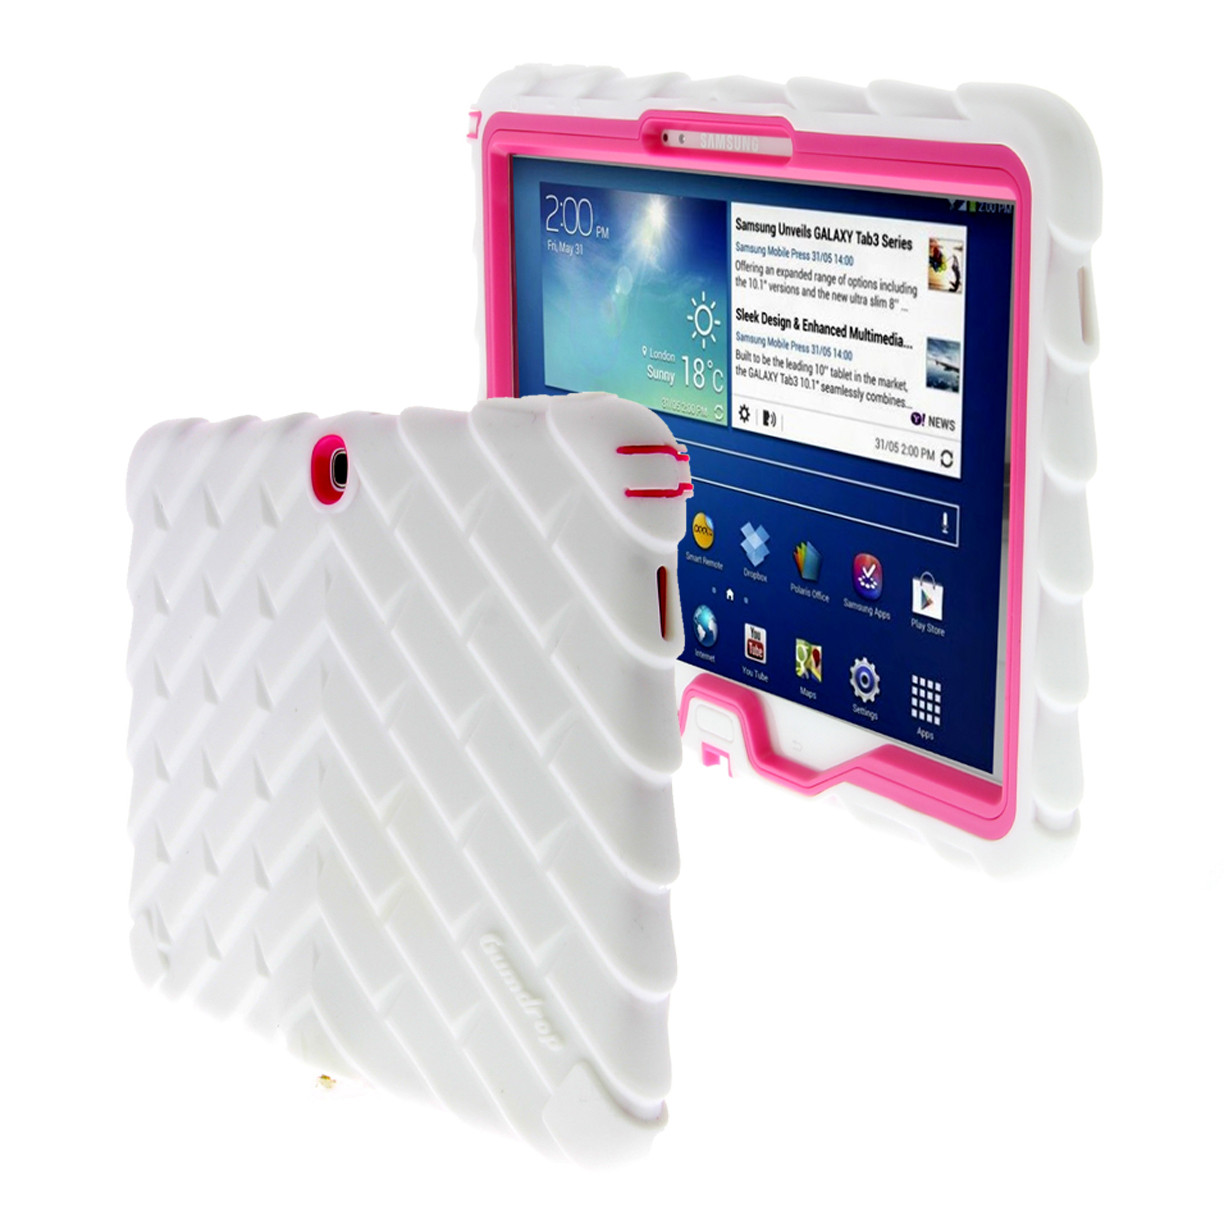 gumdrop cases droptech for samsung galaxy tab 3 10 rugged. Black Bedroom Furniture Sets. Home Design Ideas